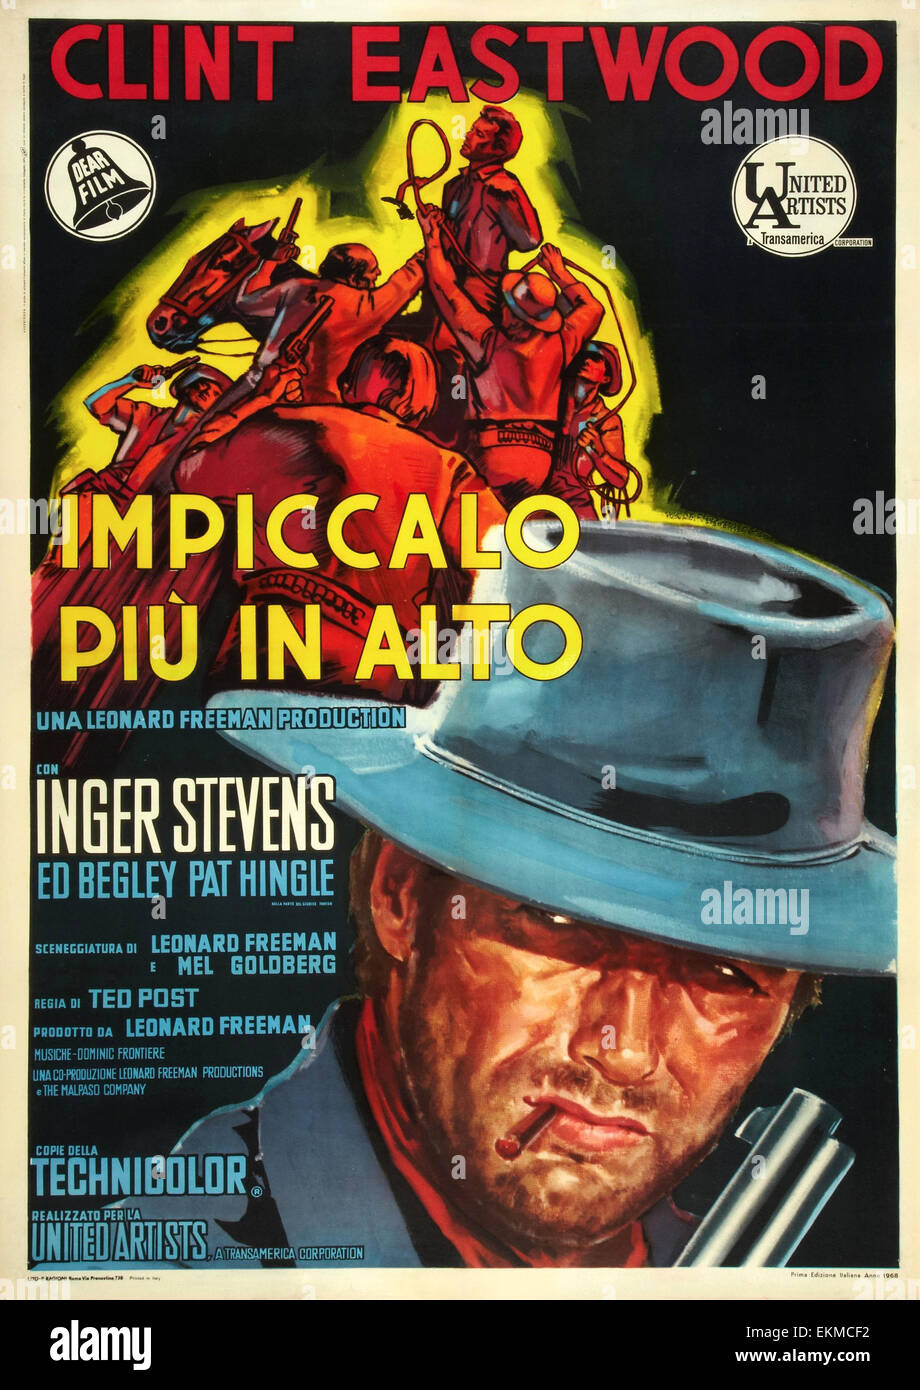 An old Italian movie poster of 'Hang 'Em High' 1968 American Western film starring Clint Eastwood - Stock Image